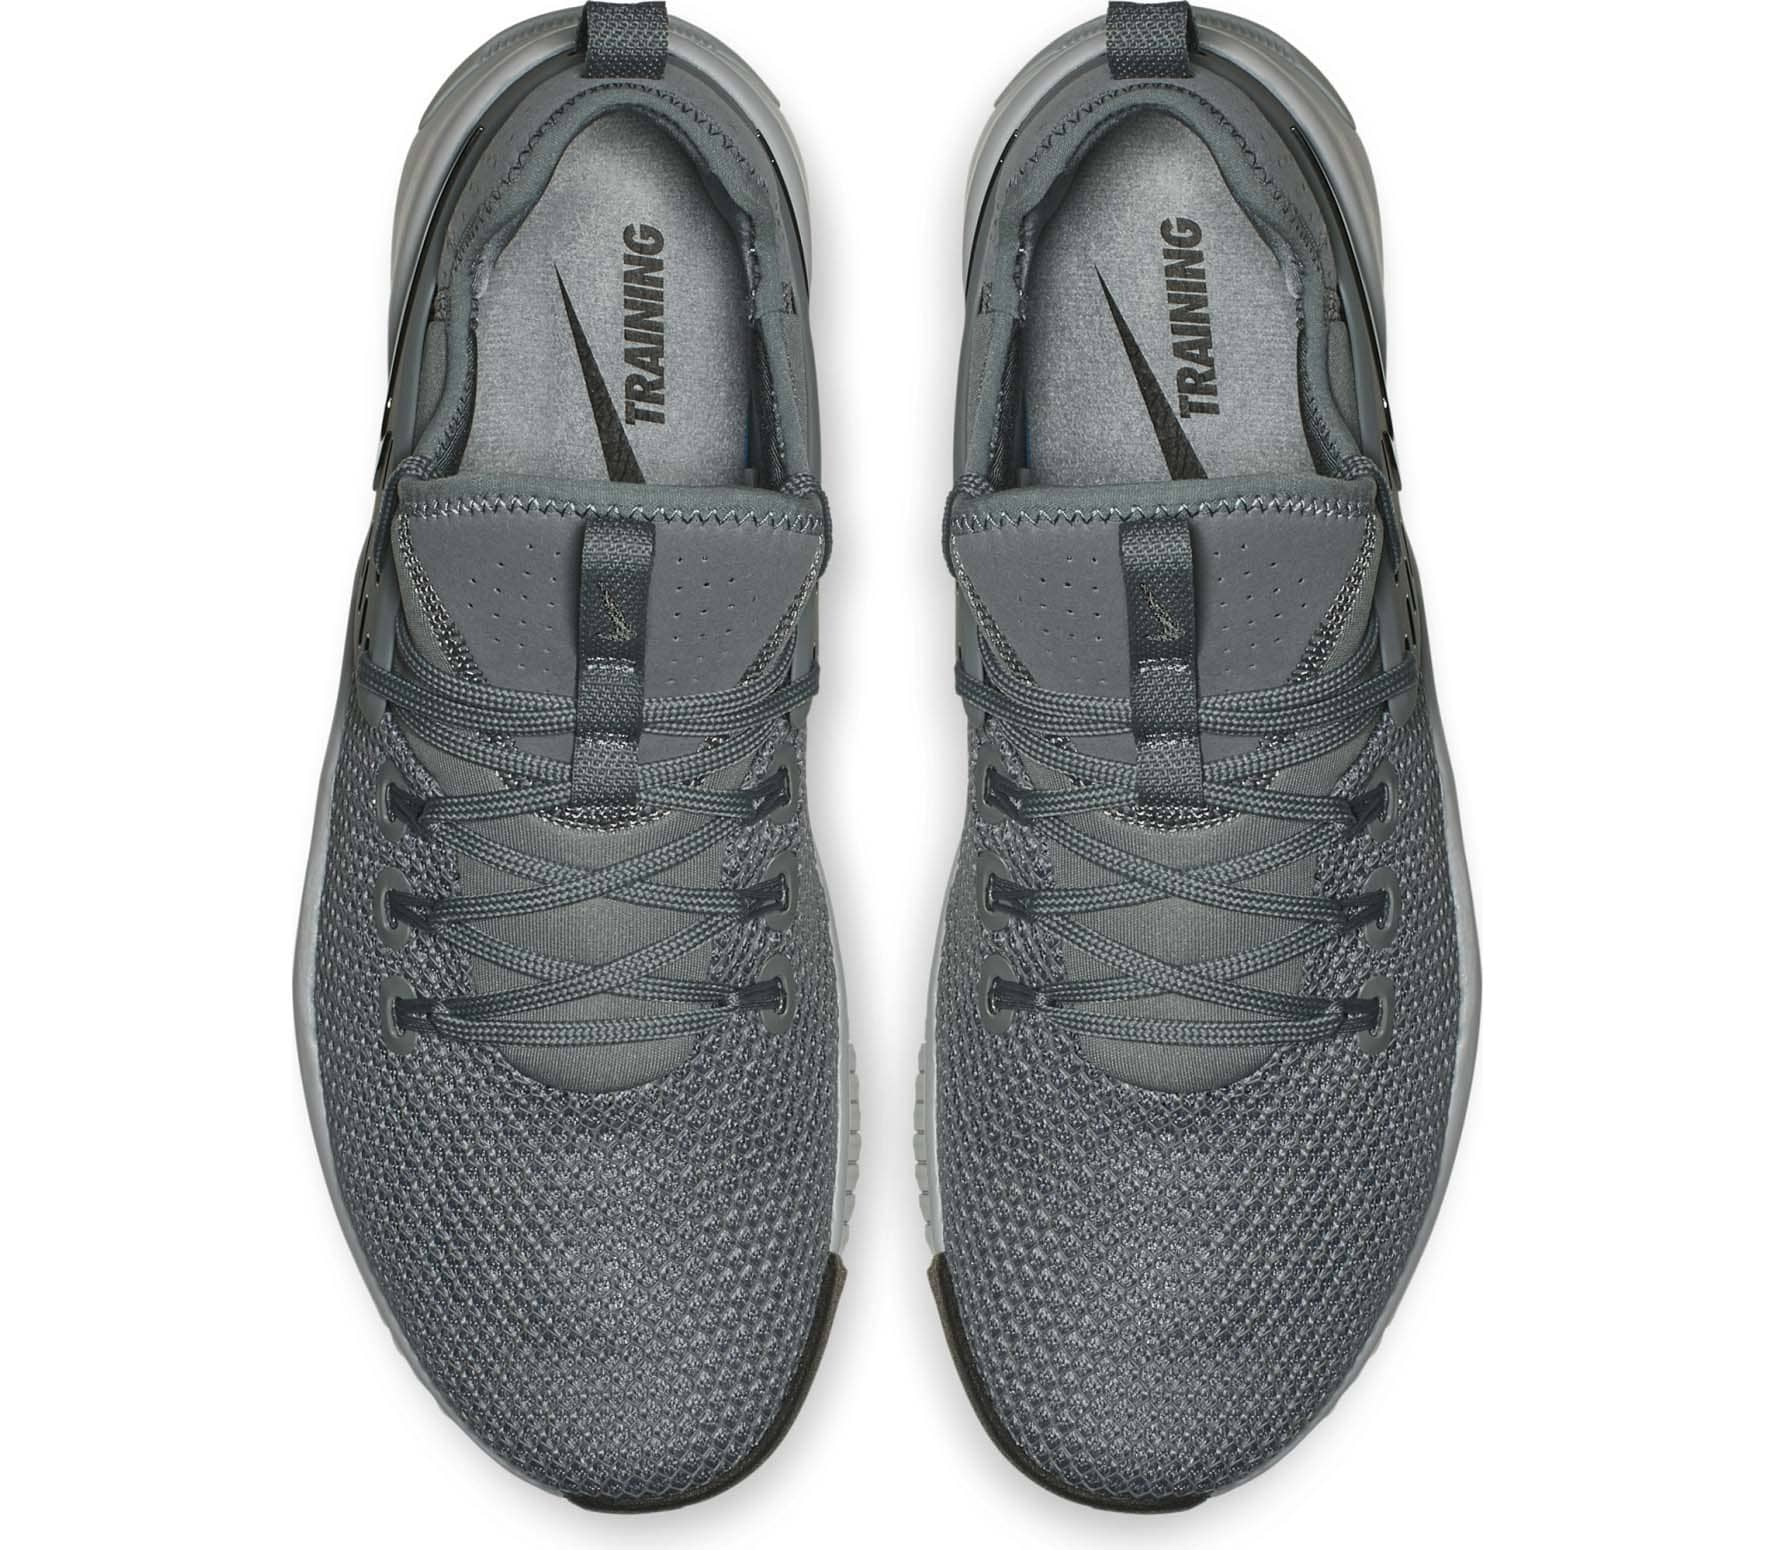 916fe9a411f0 Nike - Free X Metcon men s training shoes (grey) - buy it at the ...